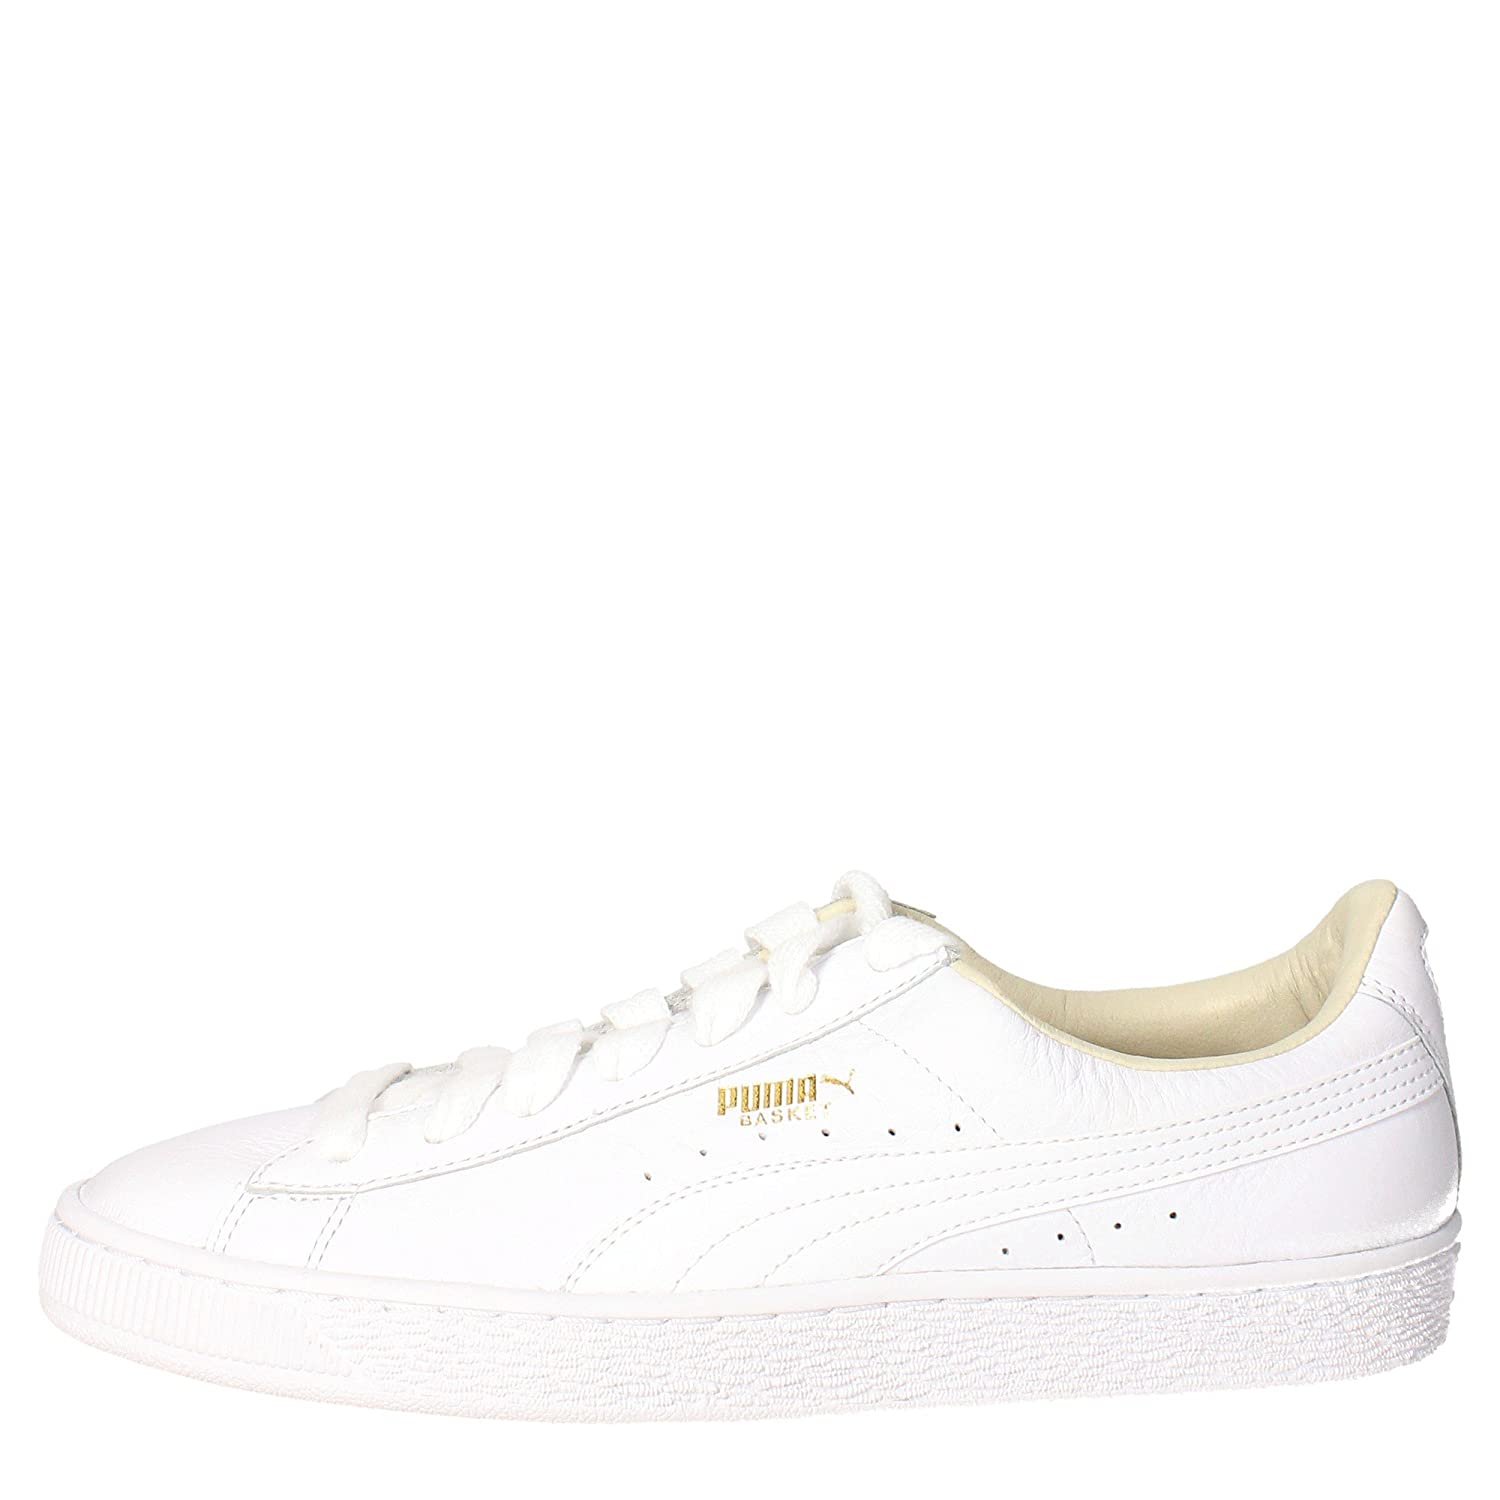 sneakers for cheap dcb0c c02f9 Puma Unisex Adults' Basket Classic LFS Low-Top Trainers ...